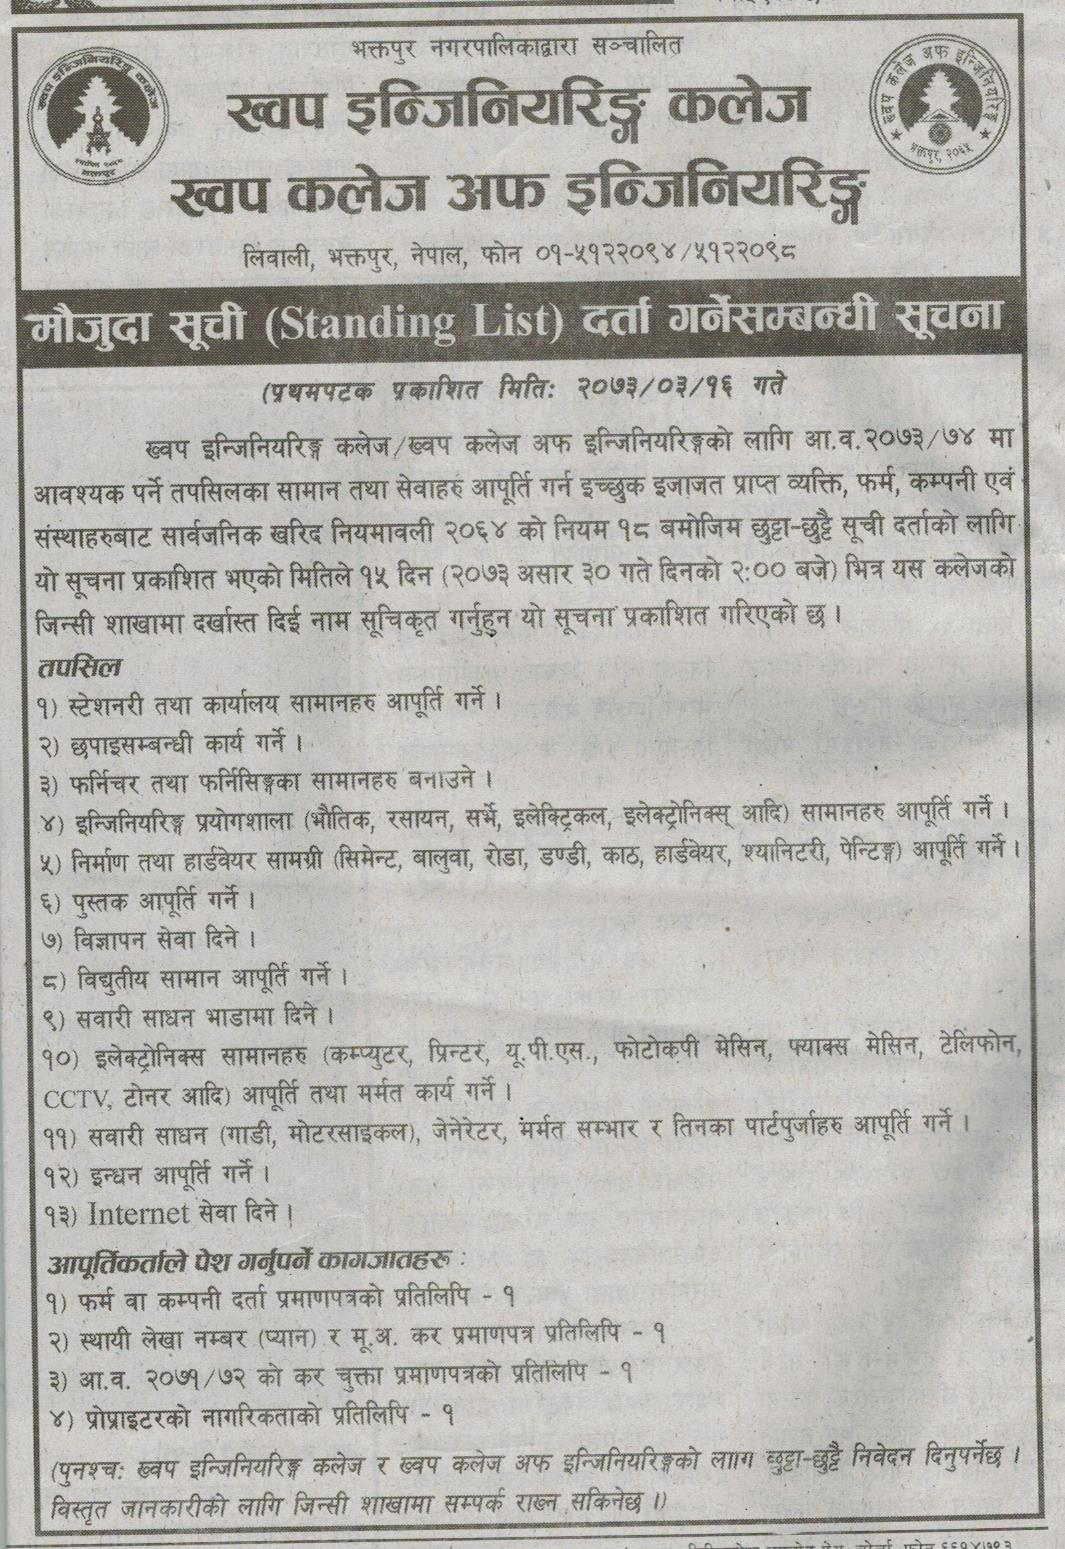 Notice for the registration of standing list